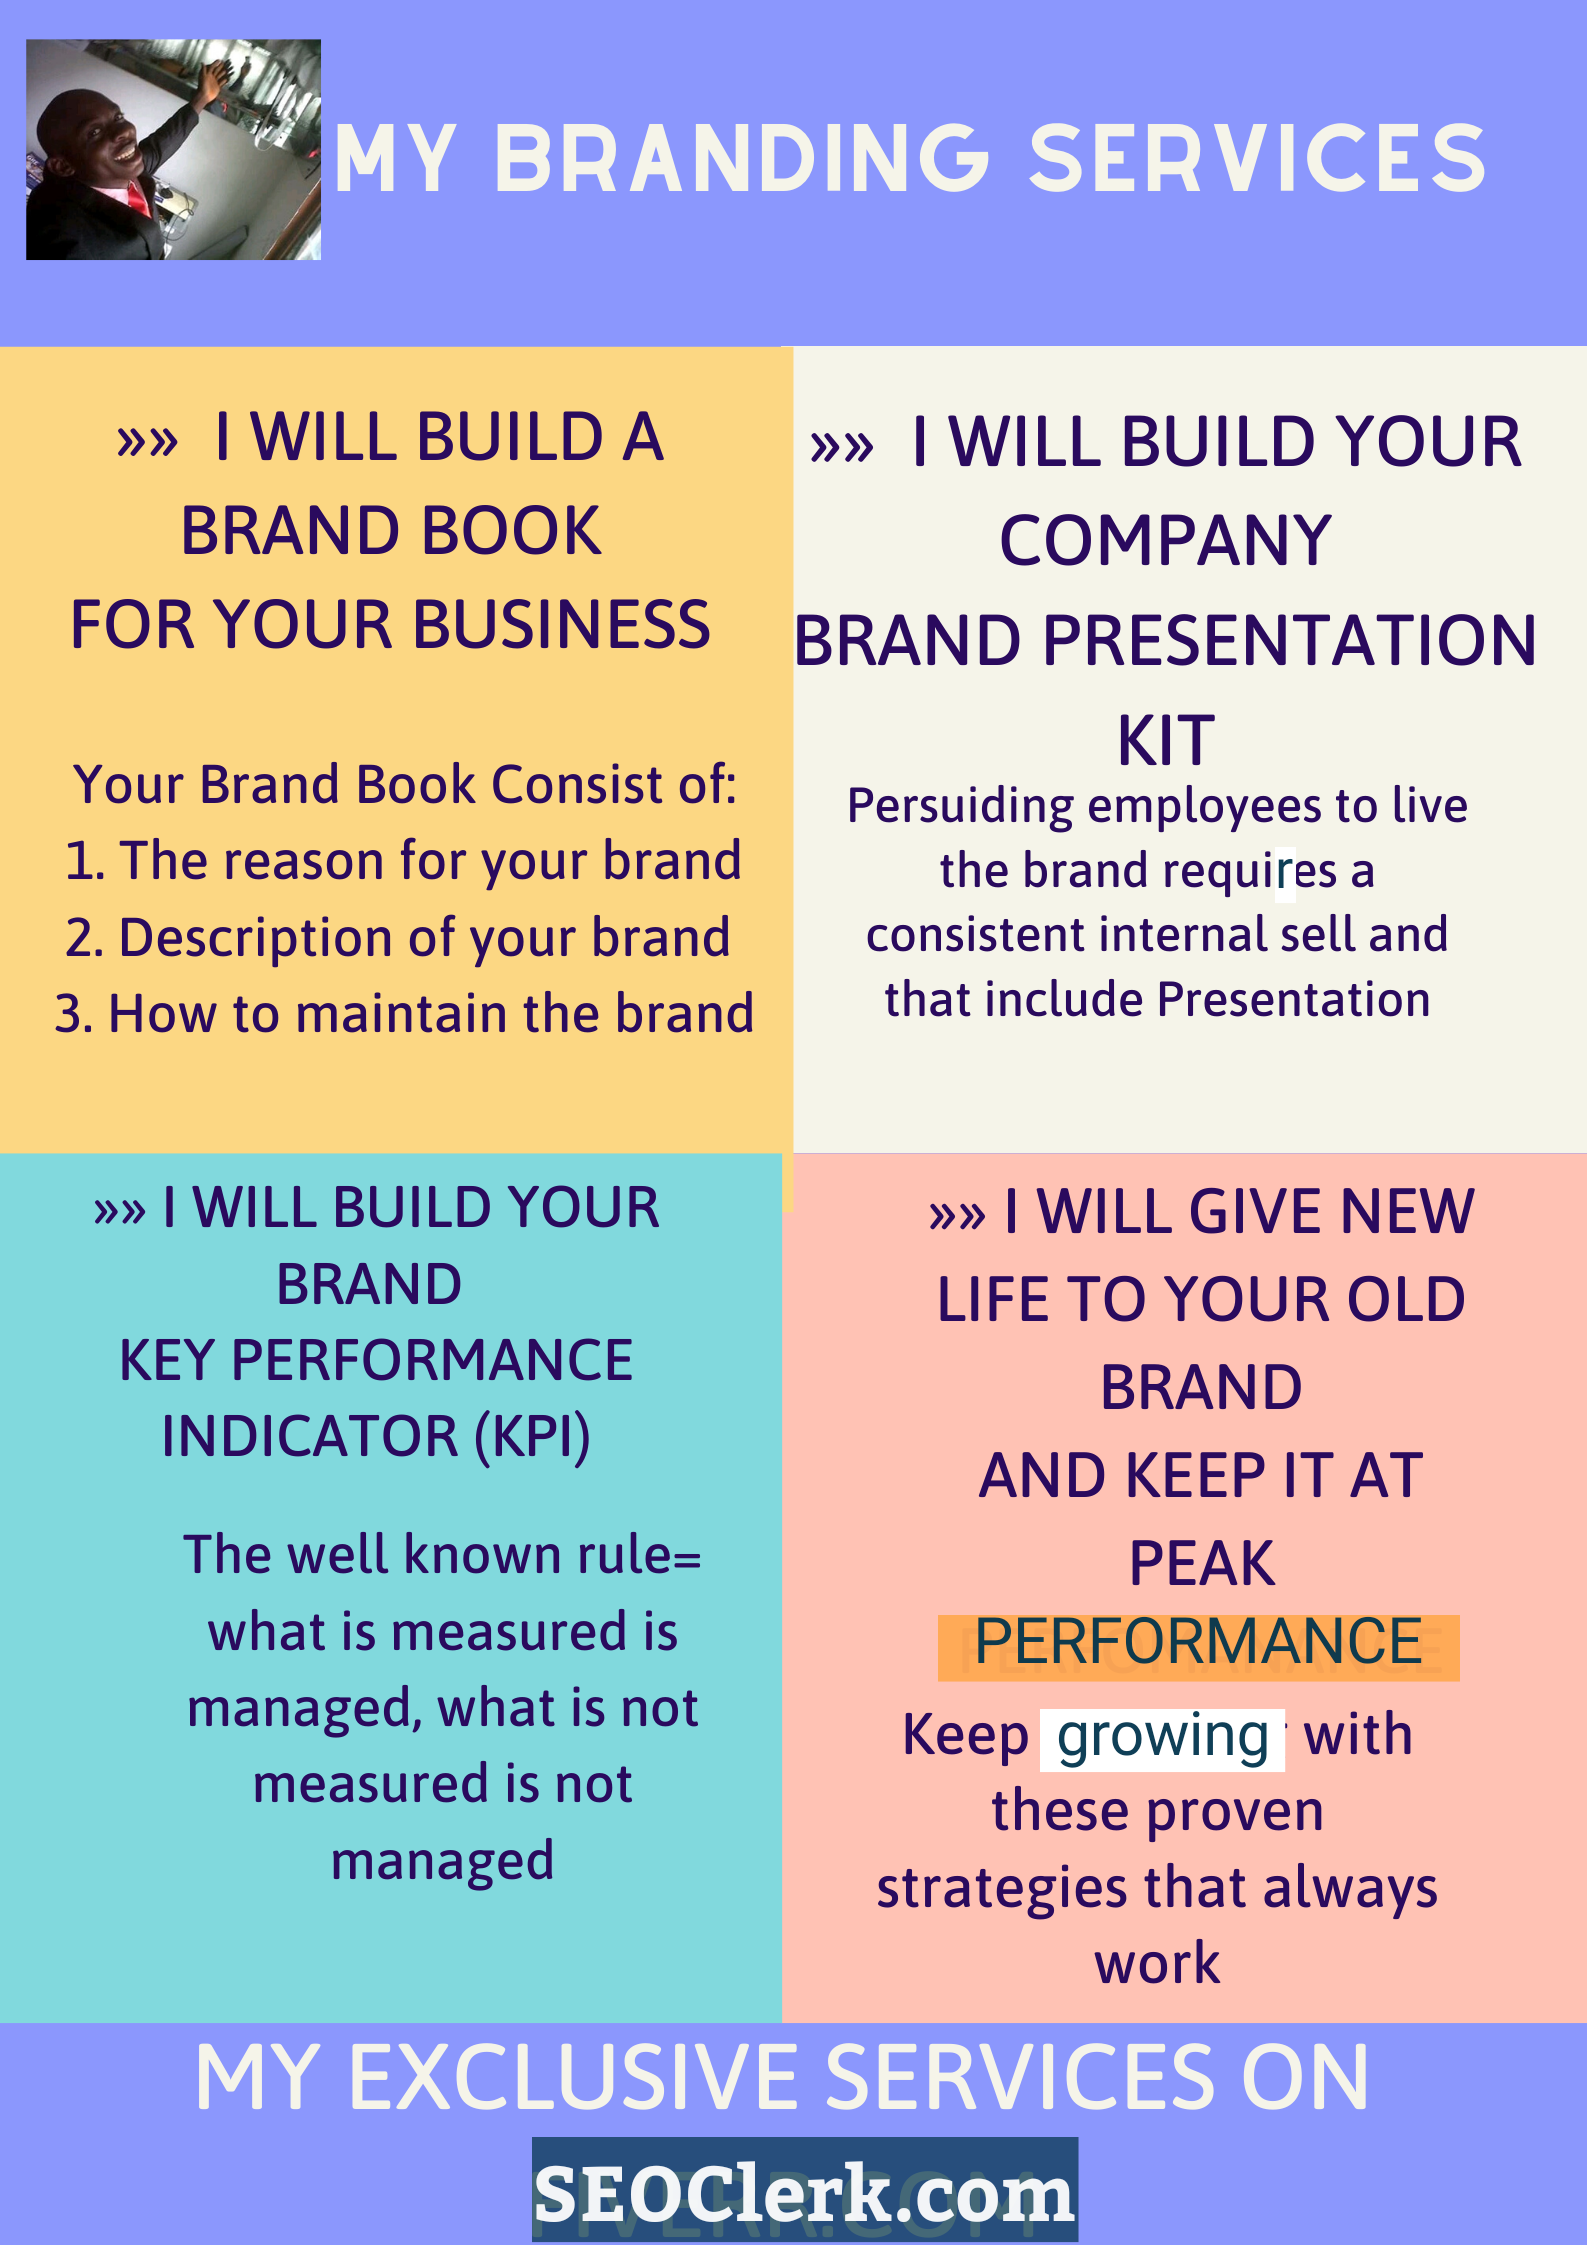 Build your brand message and brand description